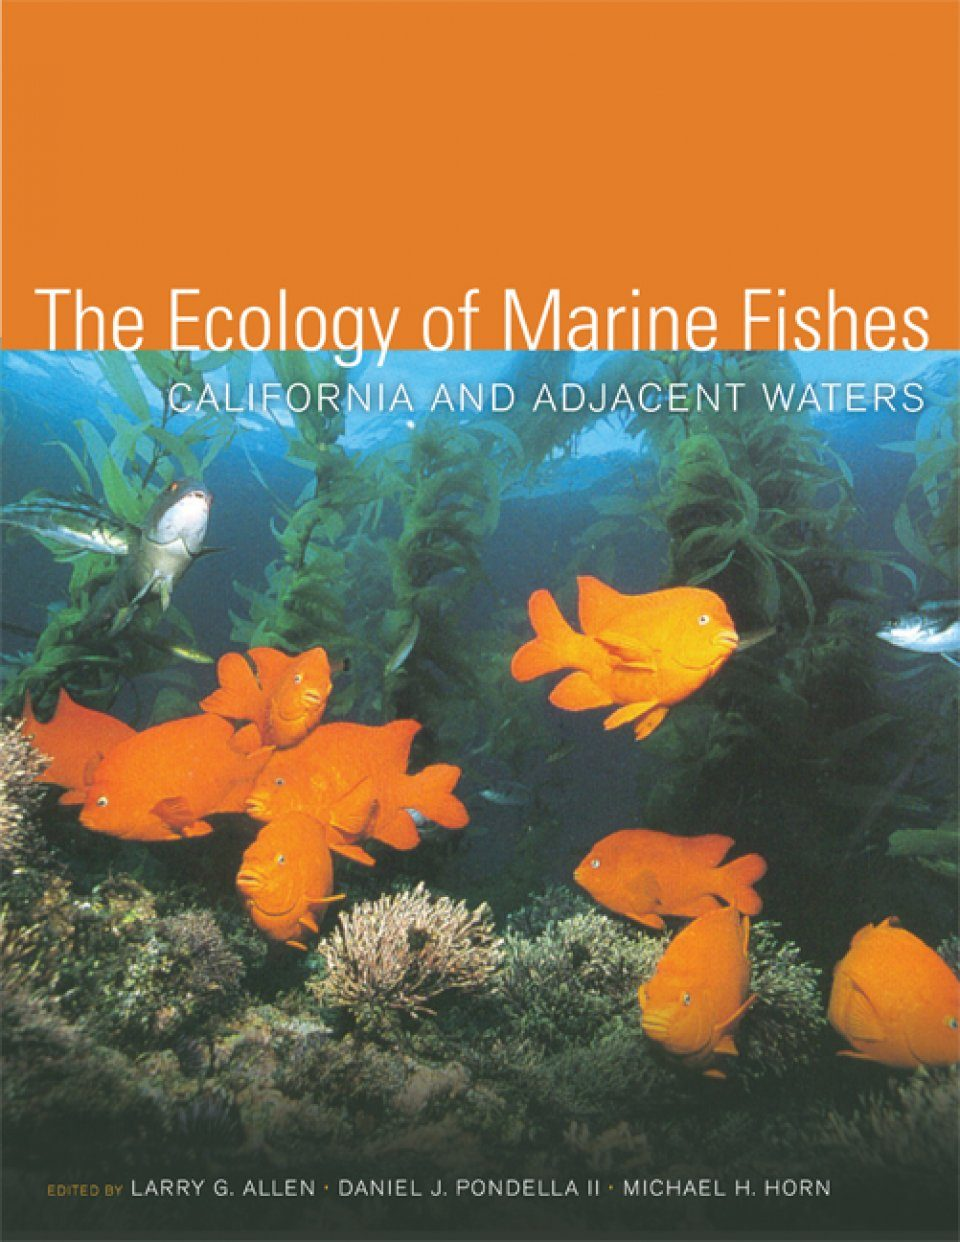 The Ecology of Marine Fishes